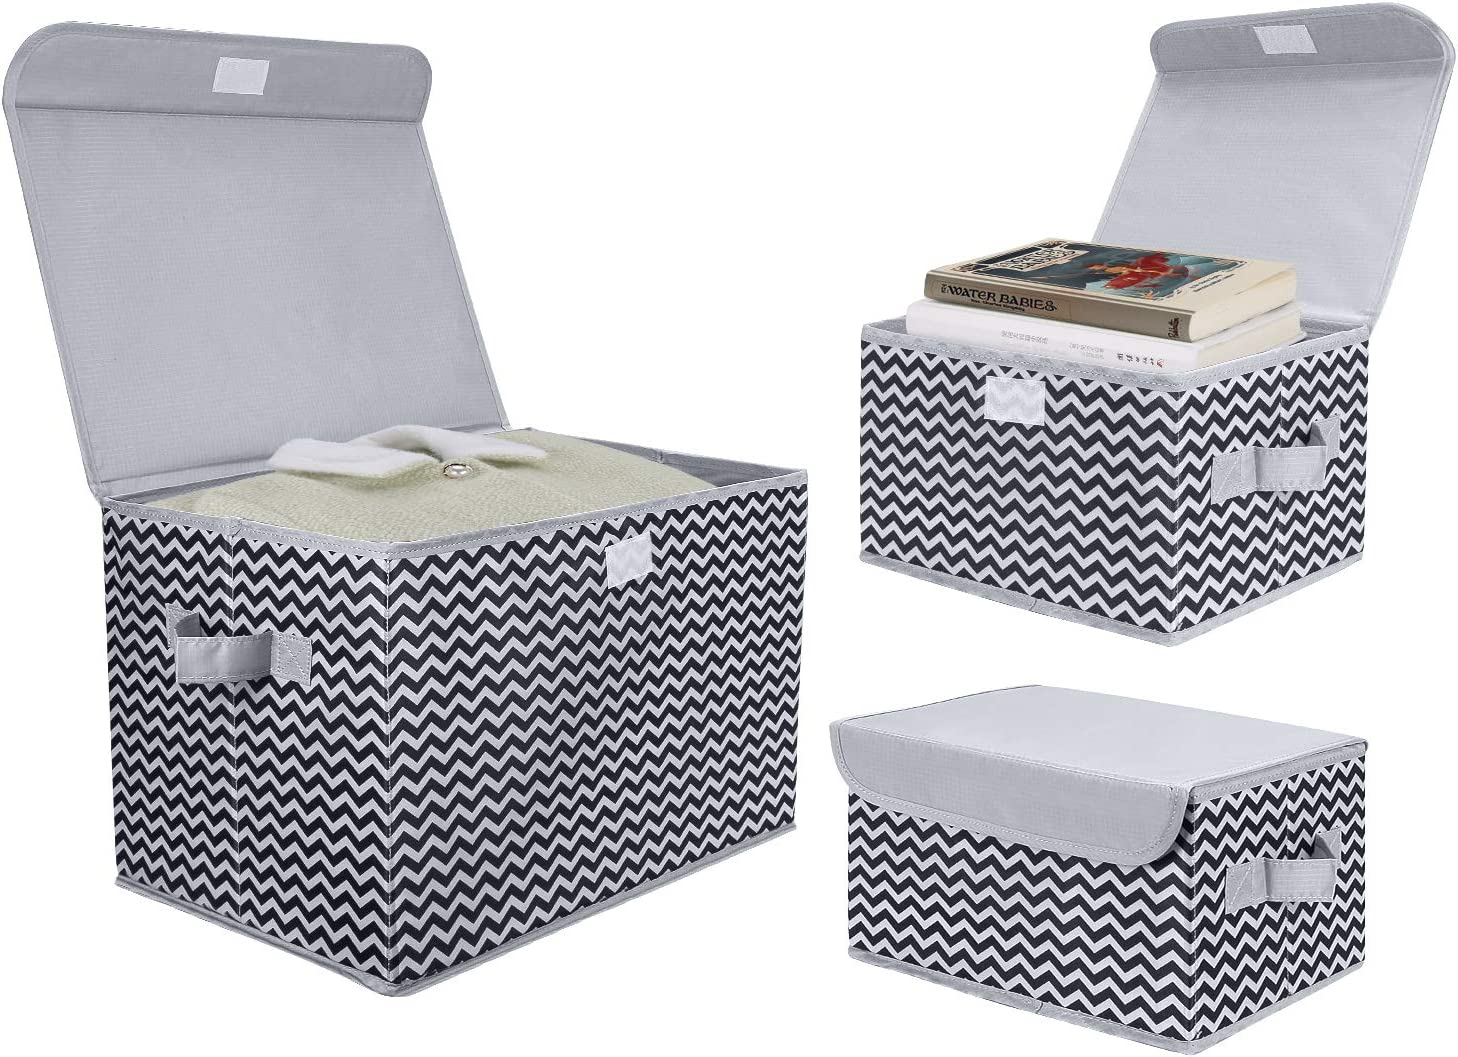 DIMJ 3Pcs Fabric Storage Bins & Storage Box with Flip-top Lid, Collapsible Large Basket Boxes for Books, Clothes, Toys Cubes, Home Bedroom Closet Office Organiser (Light Grey Ripple)